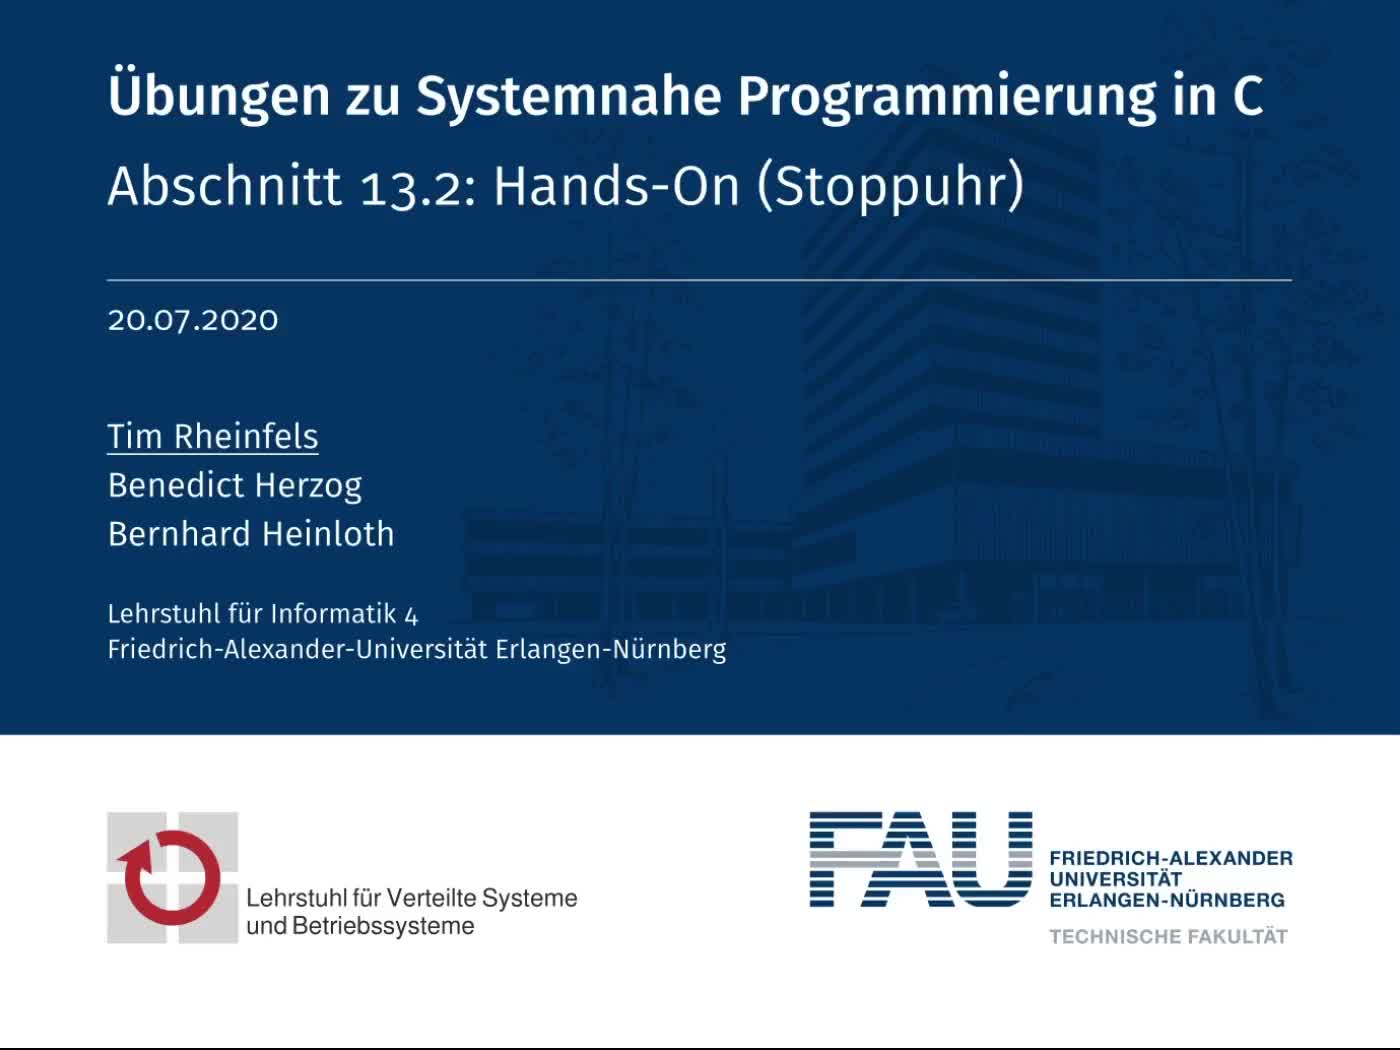 13.2: Hands-On (Stoppuhr) preview image